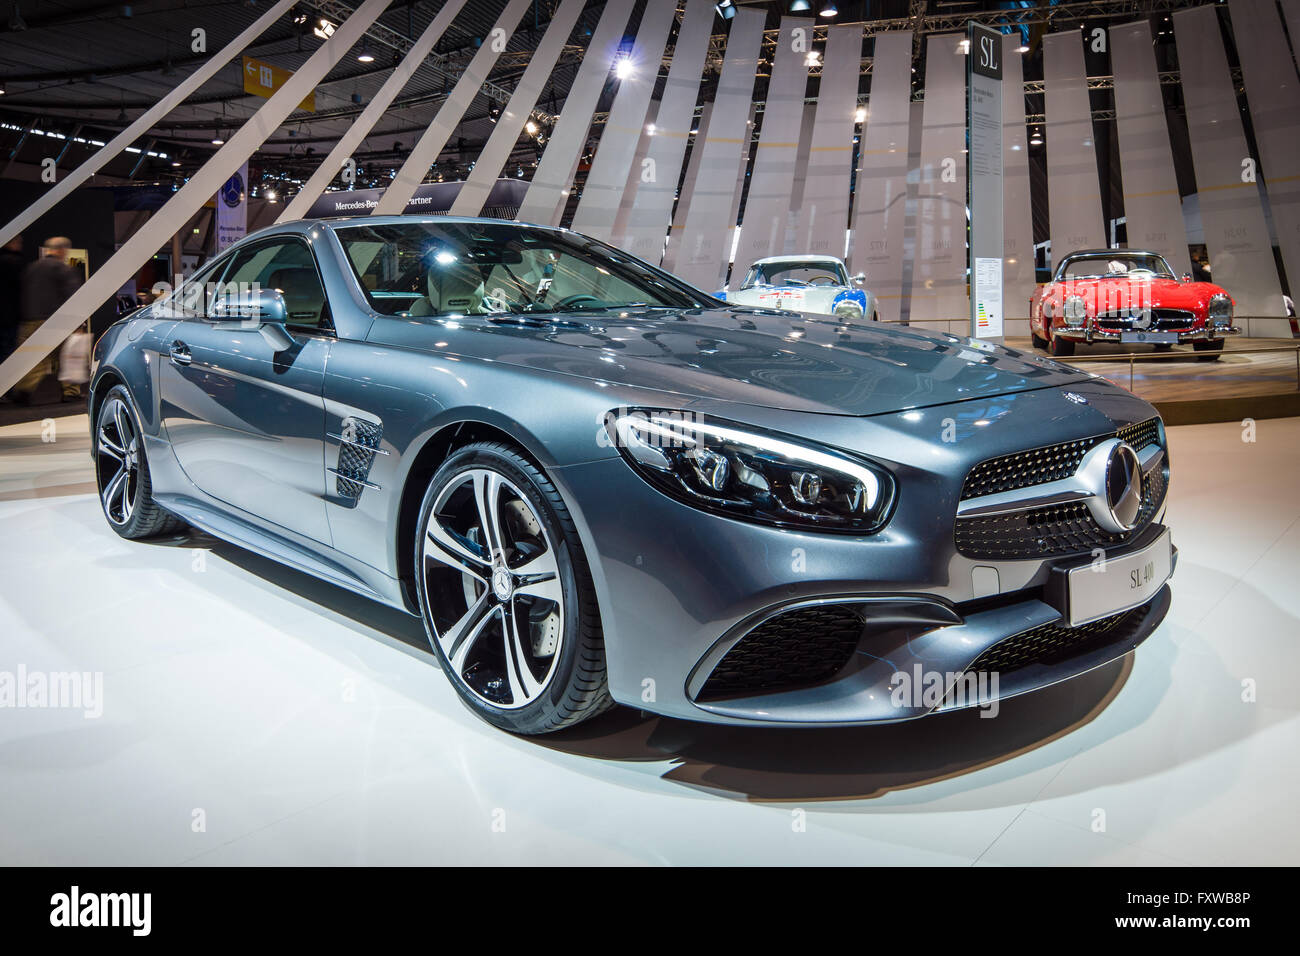 Sports Car Mercedes-Benz SL 400 (R231), 2016 Stock Photo